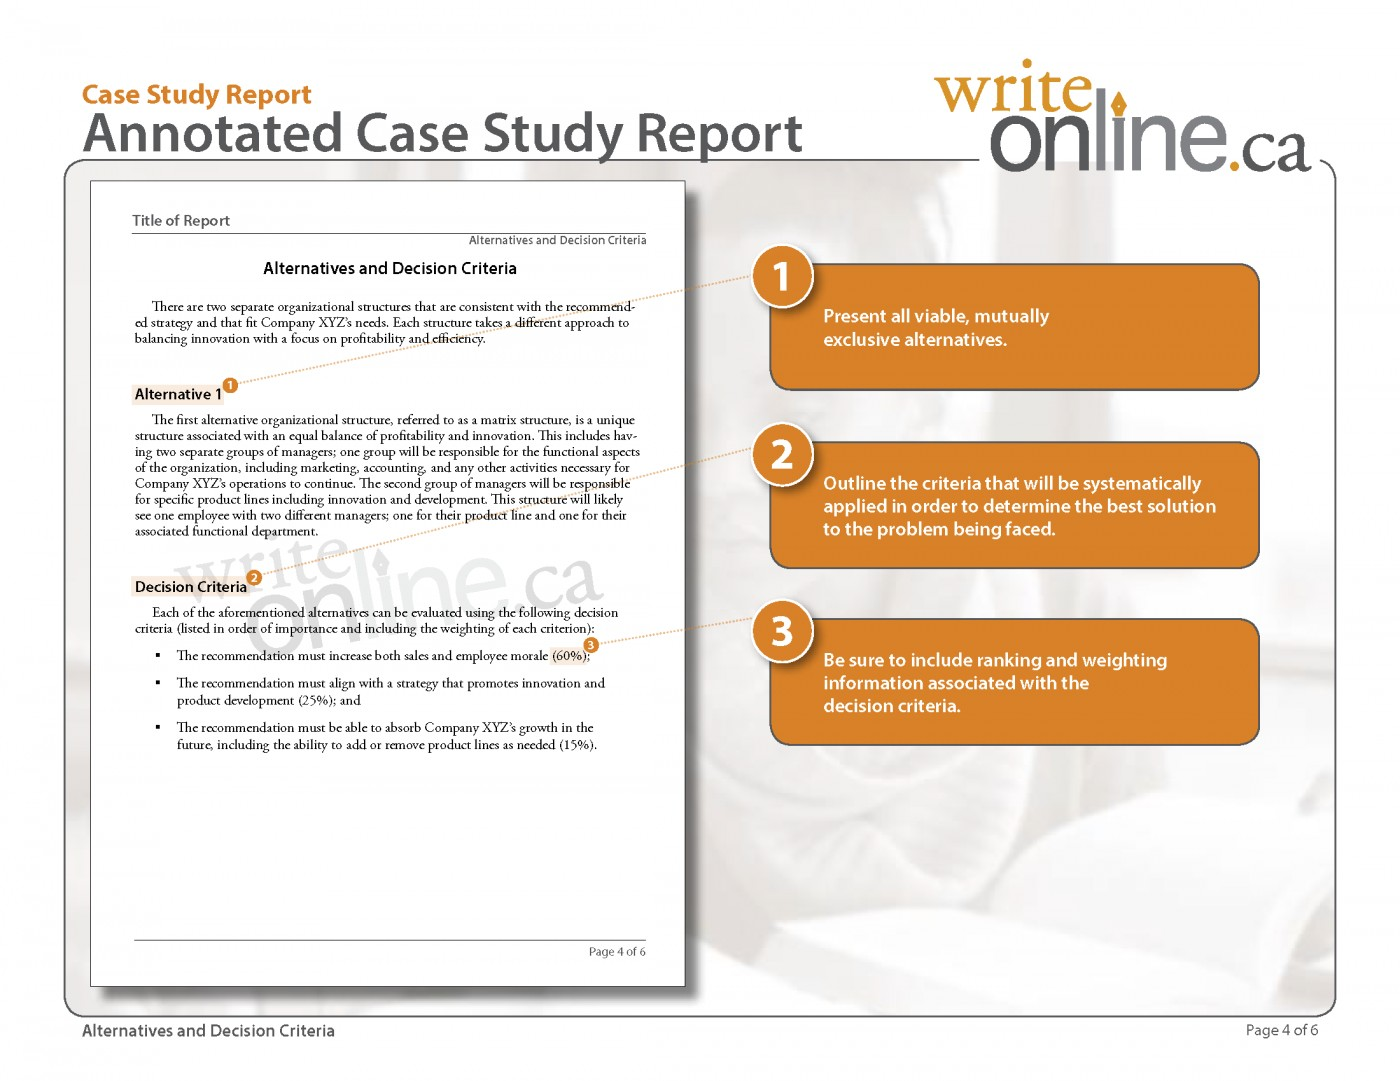 003 Research Paper Component Of Pdf Casestudy Annotatedfull Page 4 Archaicawful Parts Chapter 1 1-5 1400